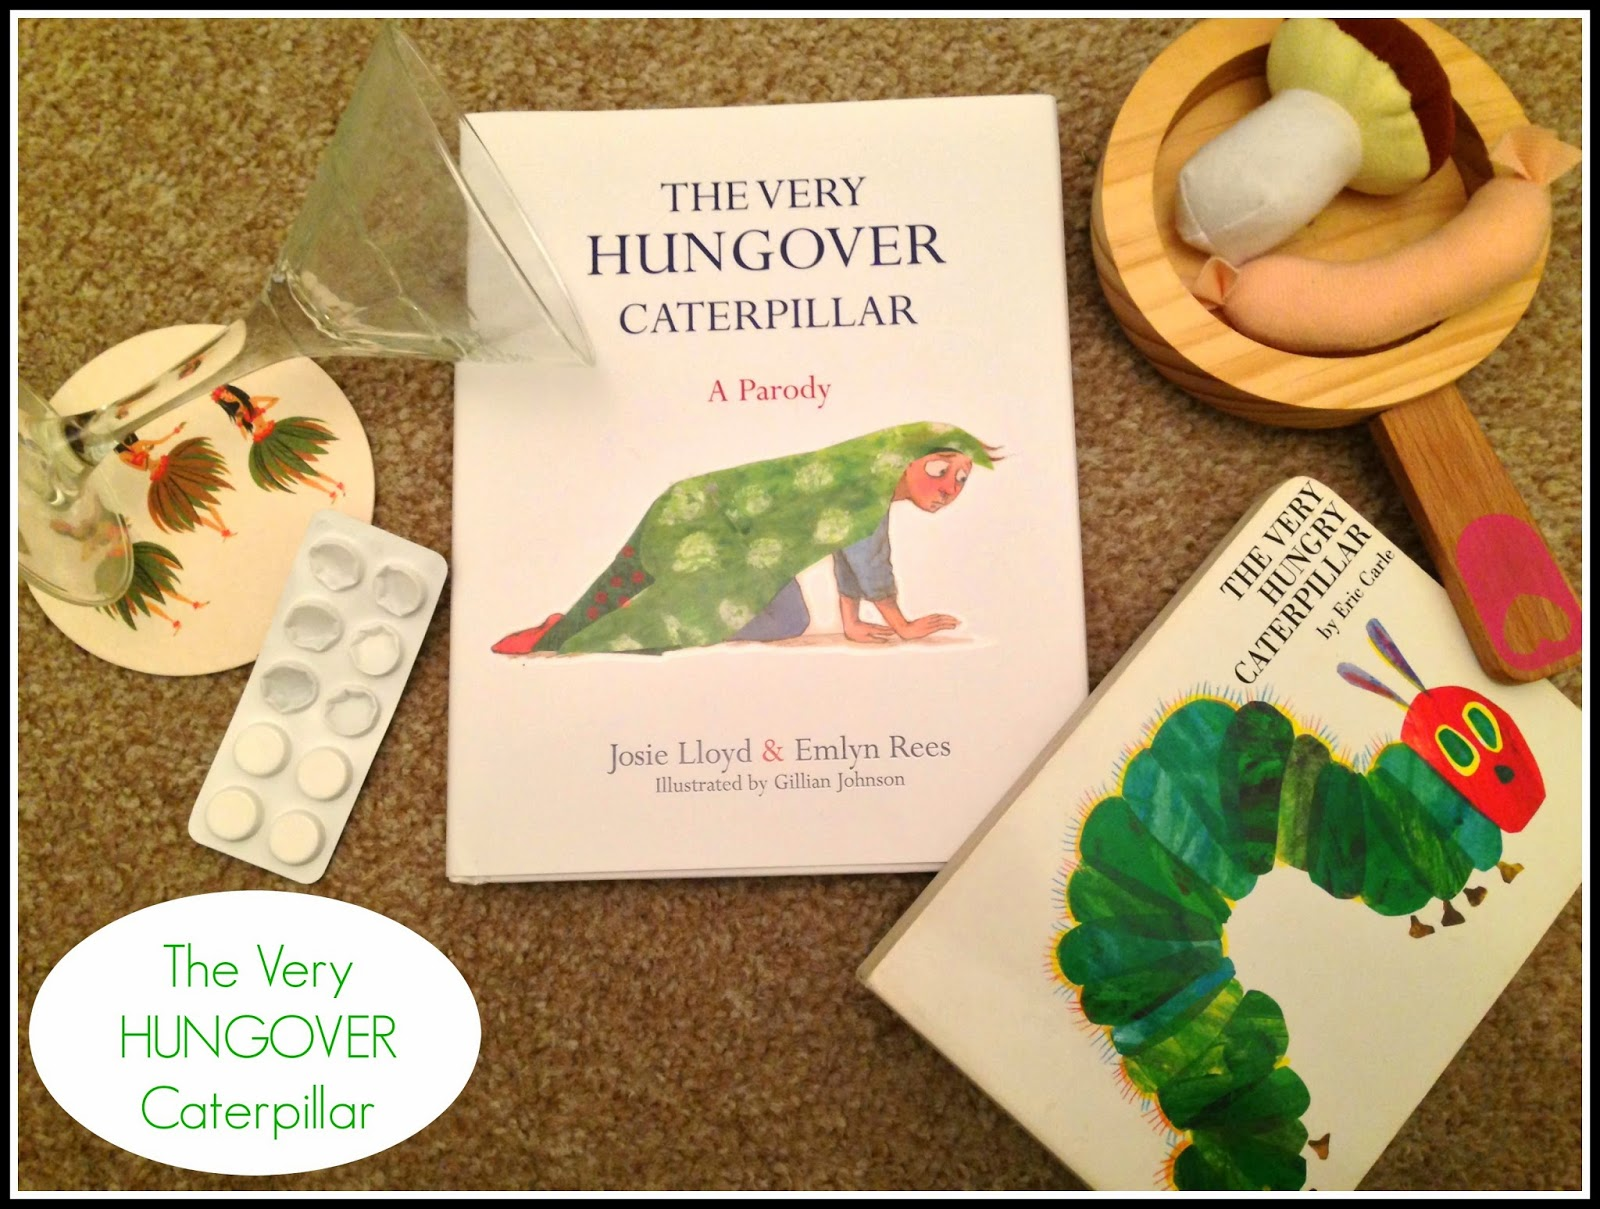 One for the grown-ups - The Very Hungover Caterpillar | the very hungry caterpillar | we're going on a bear hunt | we're going on a bar hunt | josie lloyd | emeyl rees | boos | kids books for adults | kid-ult books | parody books | humour | gift ideas |bookclub special | the sunday night book club | mamasVIB | new books | boo launch | bookclub